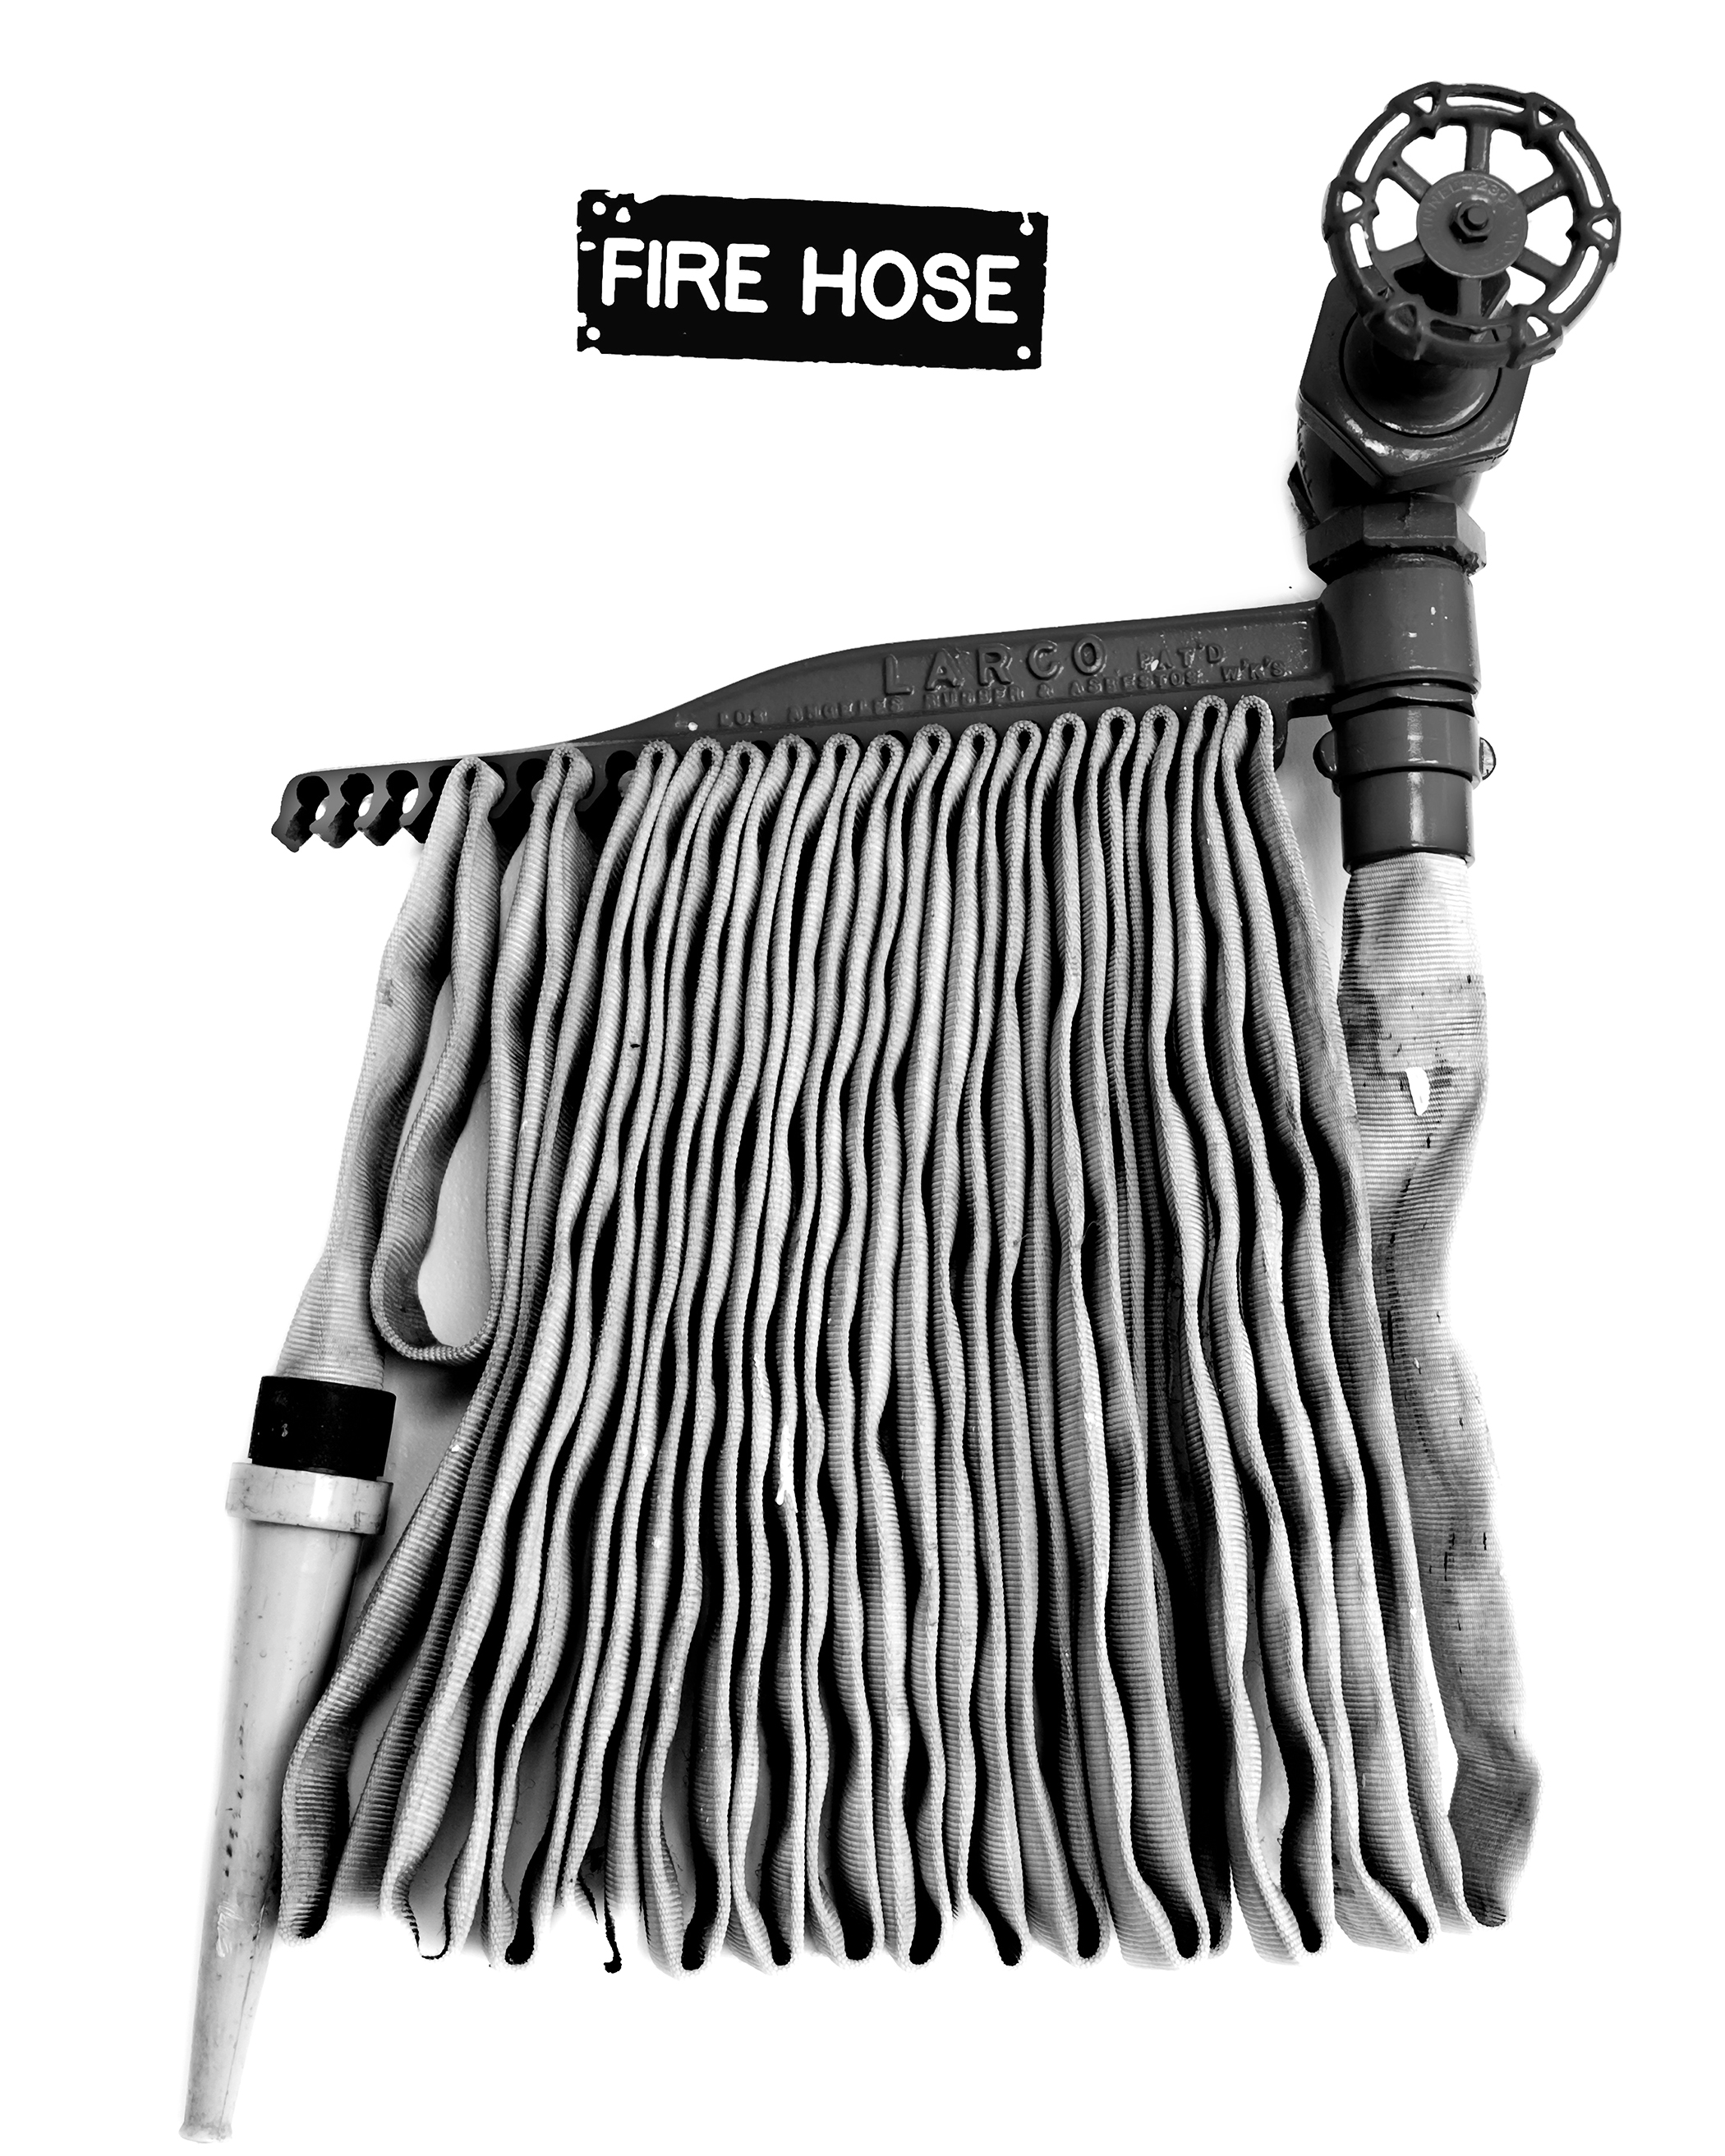 Firehose, Los Angeles, CA, 2013.jpg